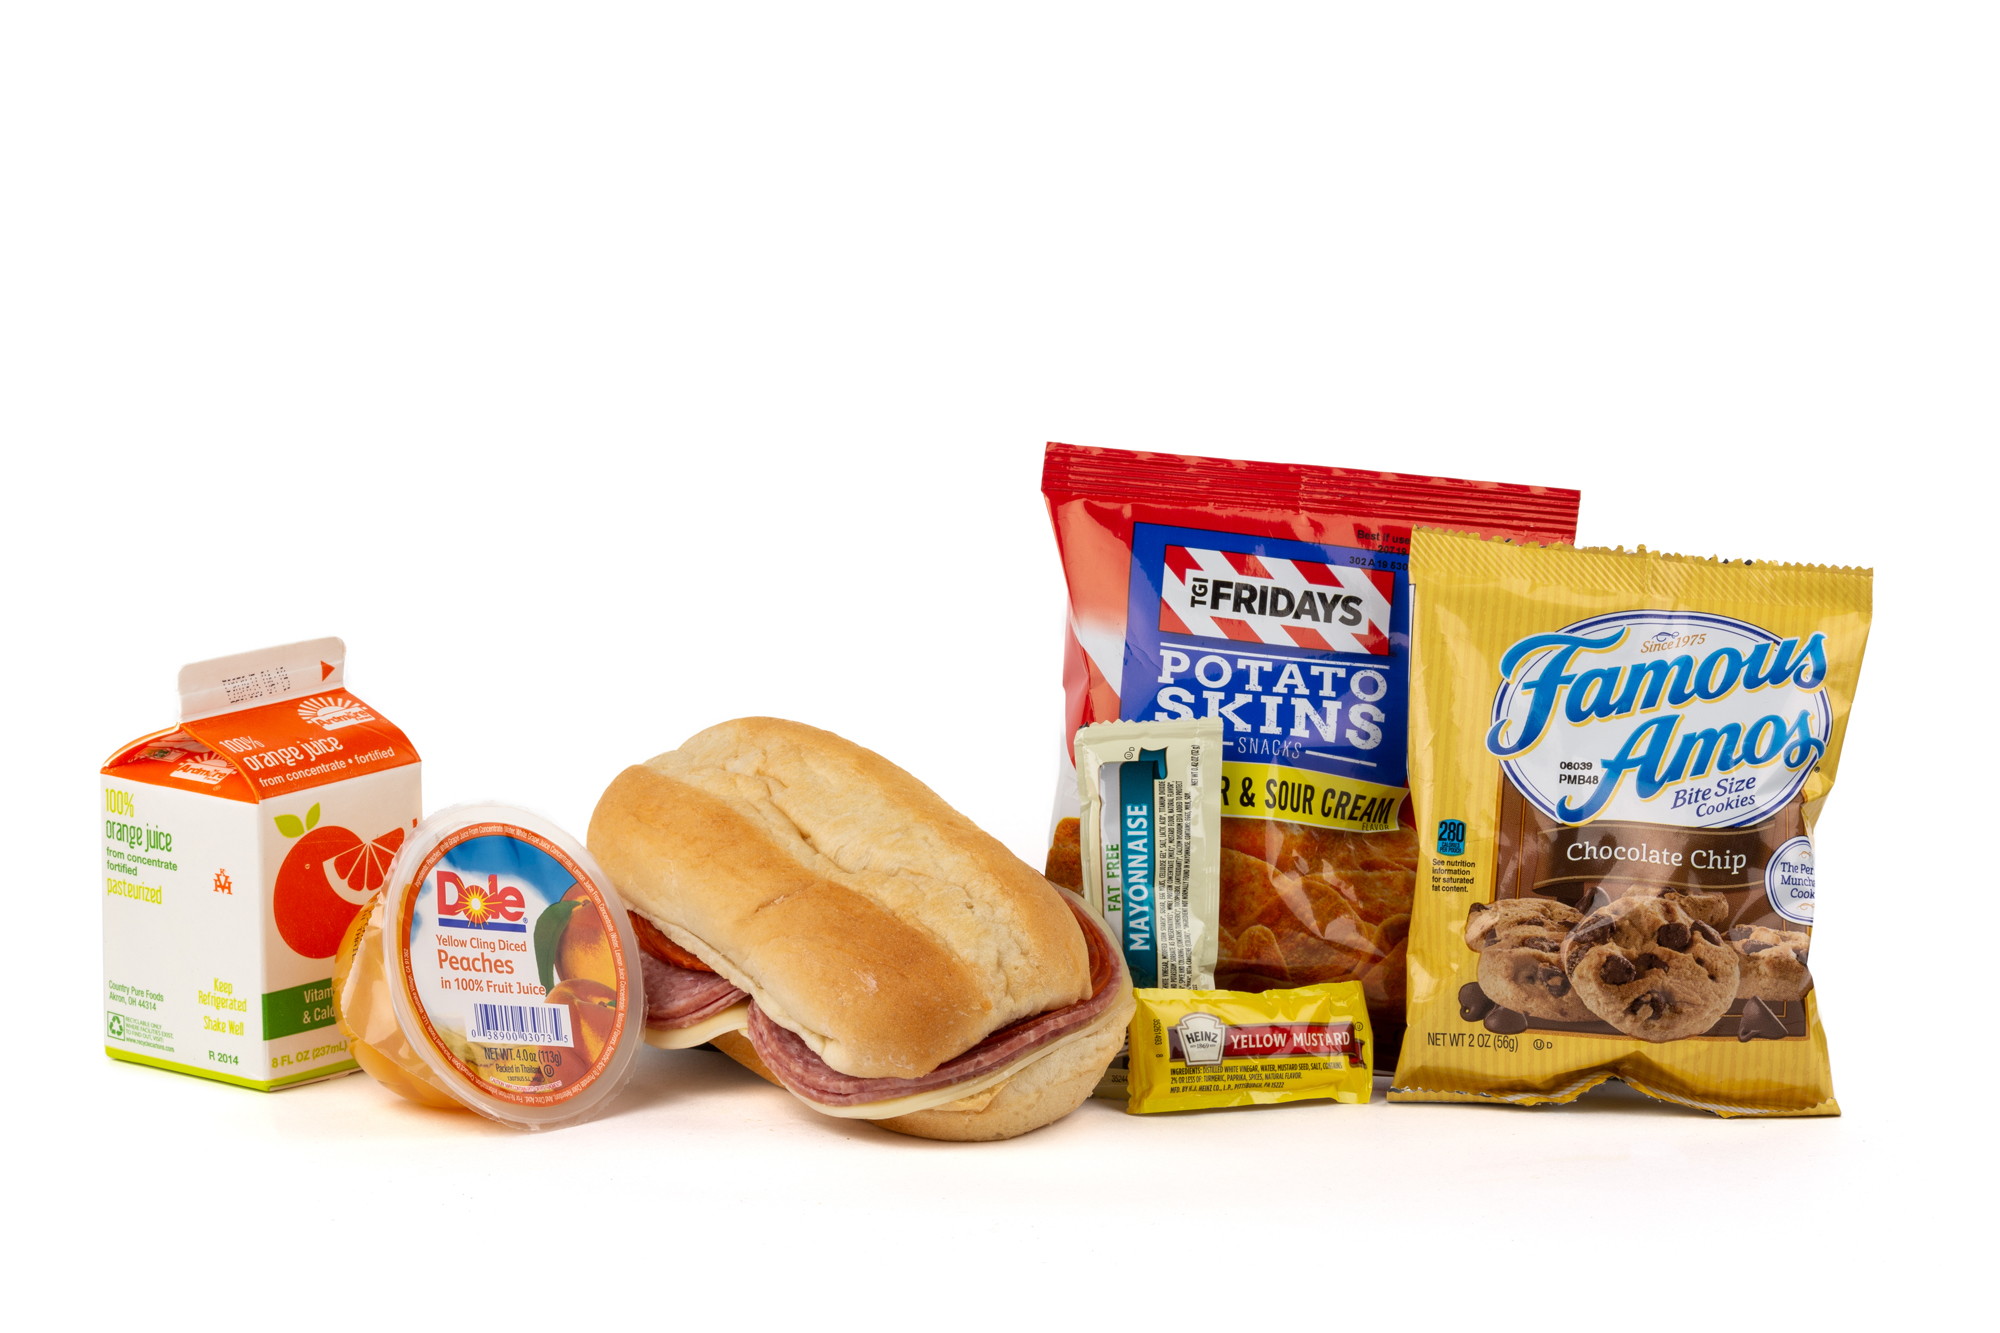 FK03 - Italian Submarine - Frozen NAPA 894001E608179  Sandwich - Italian Submarine Frozen Chip Potato TGIF Cheddar Sour Cream Diced Peach Cup Cookie Choc Chip Famous Amos Frozen Orange Juice Mayonnaise Packet Fatfree Dressing Mustard Packet Candy Mint Starlight Spearmint